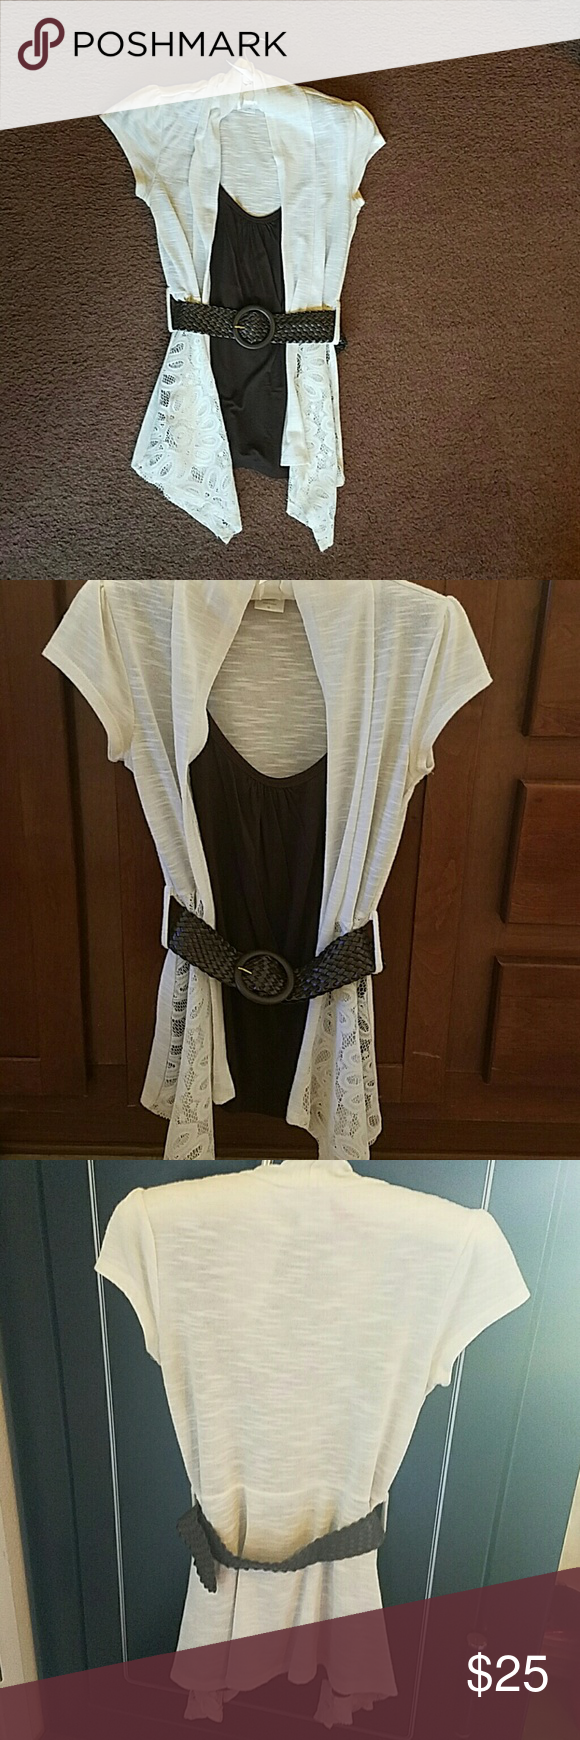 Professional and fun one piece top plus belt Cute comfortable and airy. This top is easy to dress up or down. Size size extra small but fits a size small well. Cream colored cardigan with lave on front, dark brown tank style underneath and braided belt. Bought from kohls in the juniors professional department. Tops